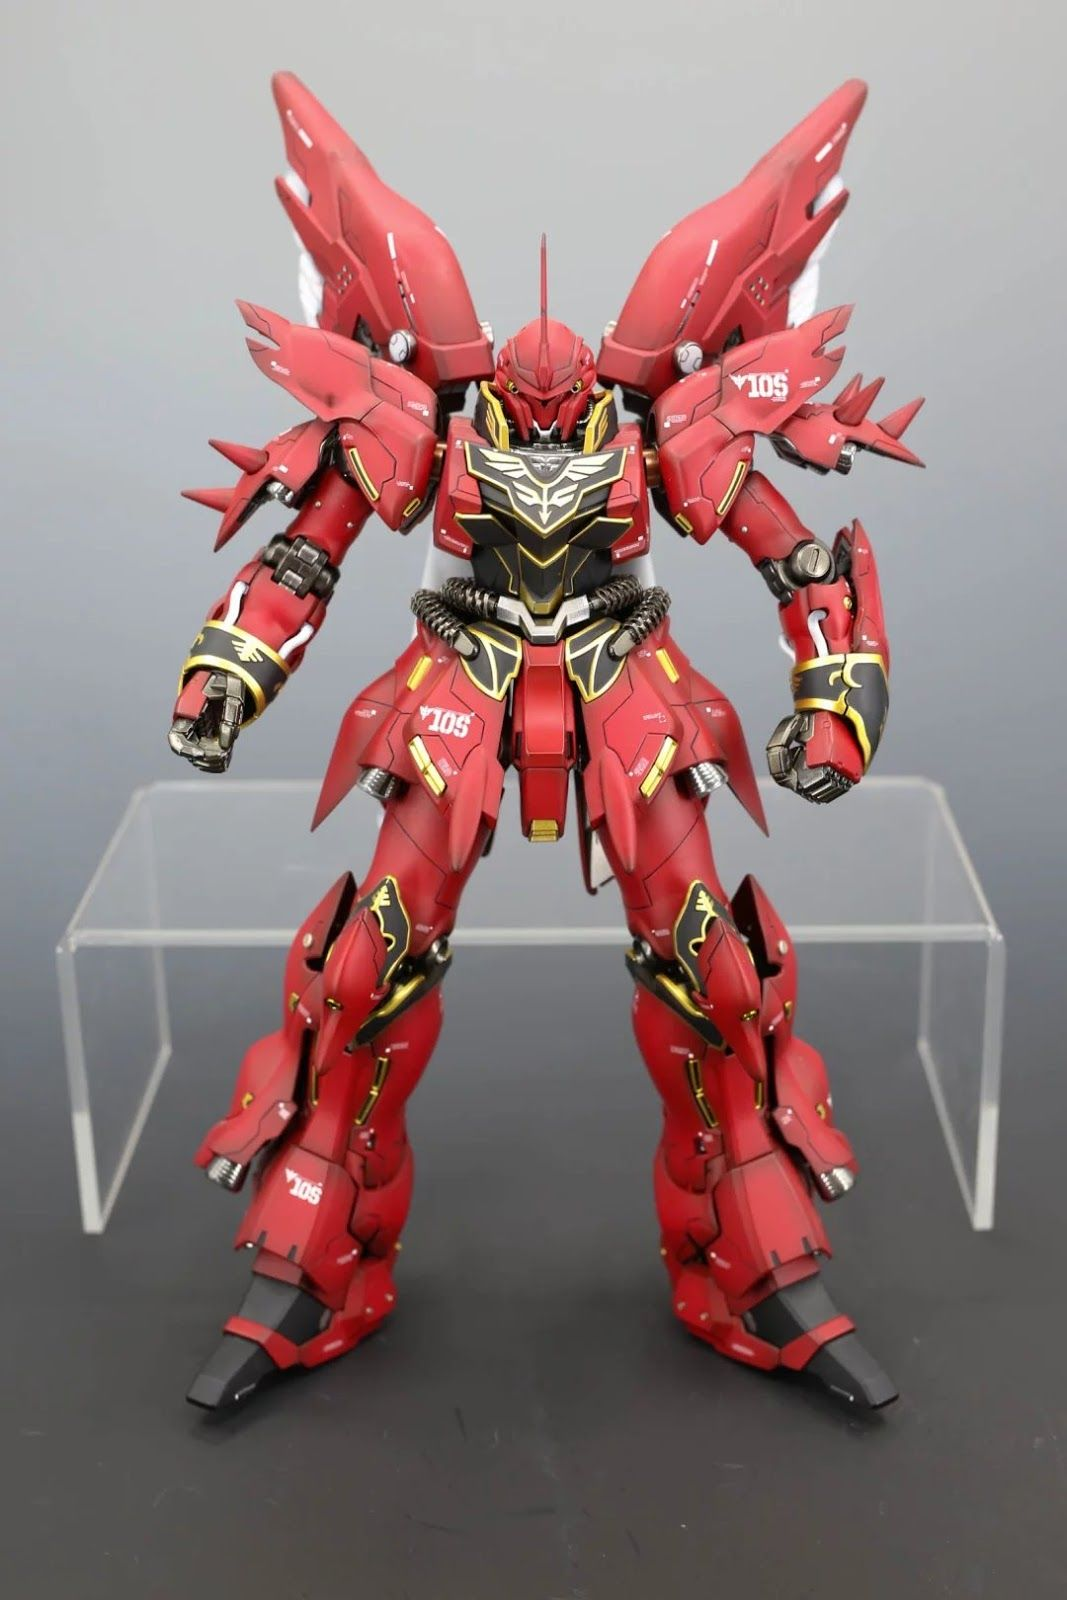 Mg 1 100 Full Armor Sinanju Diorama Build シナンジュ ガンダム